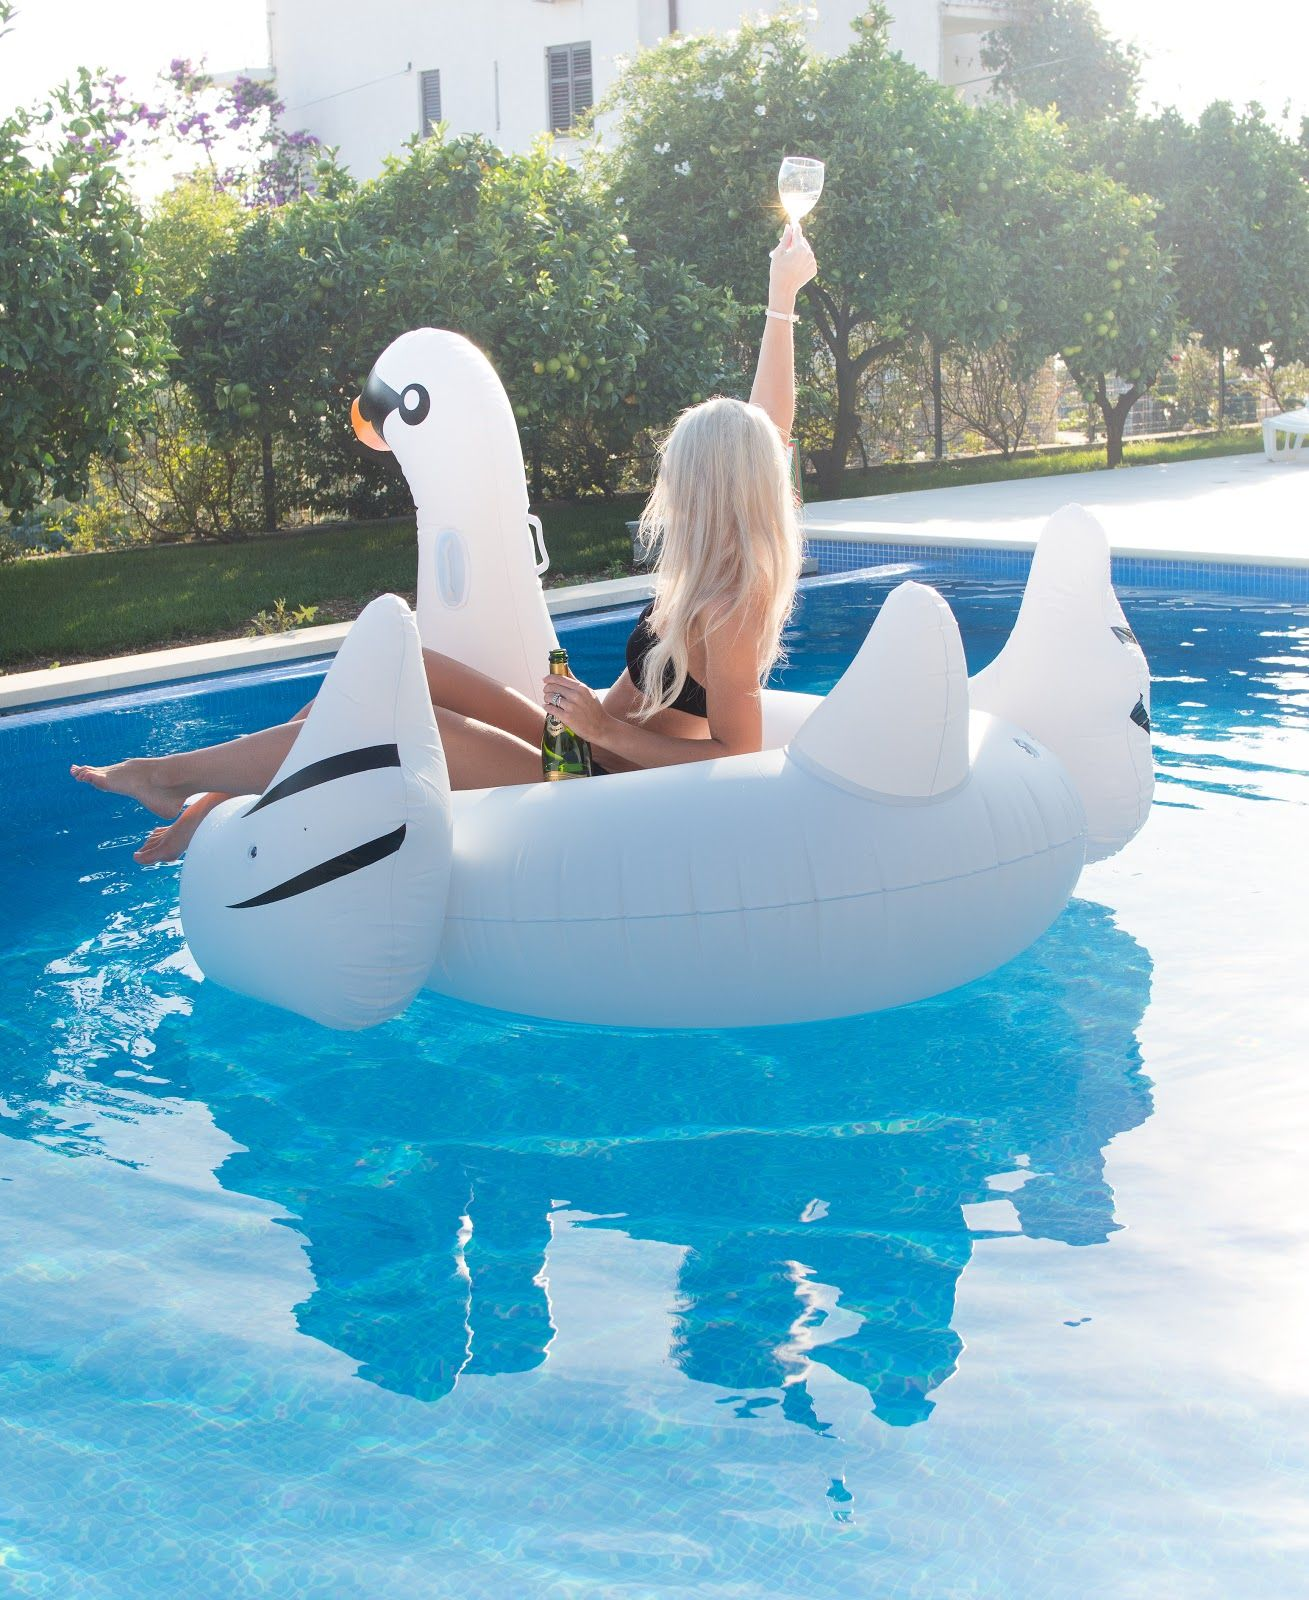 Dreaming away to a warmer place: Swan poolfloat and poolparty